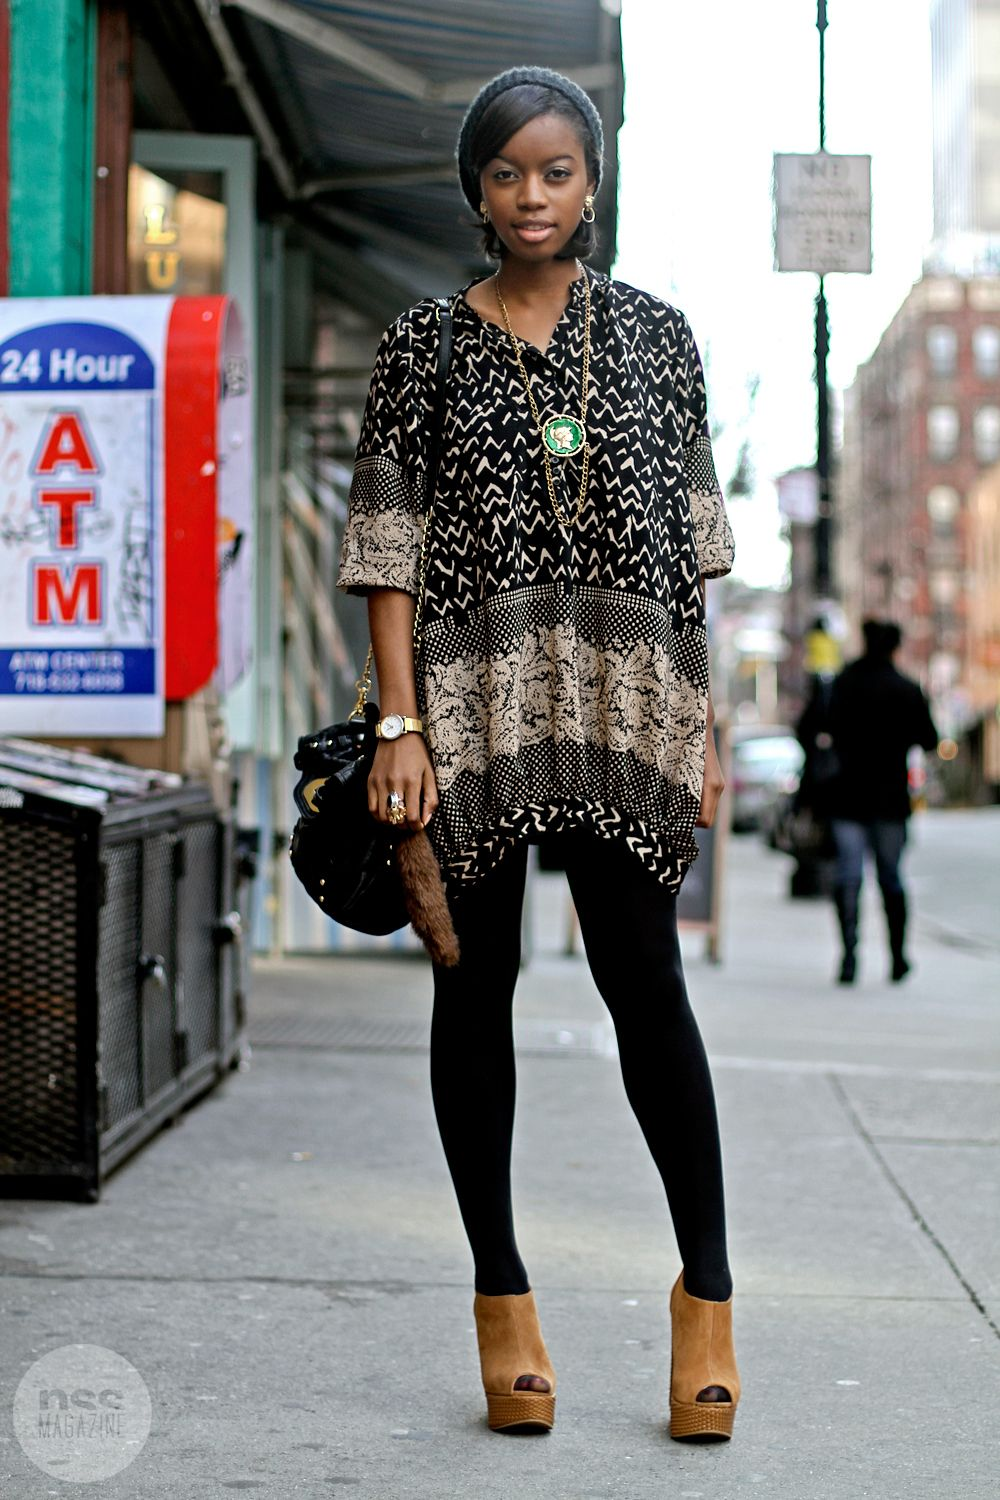 Black Girl Street Style Google Search Si 39 S Lookbook Pinterest Urban Outfitters Shoes